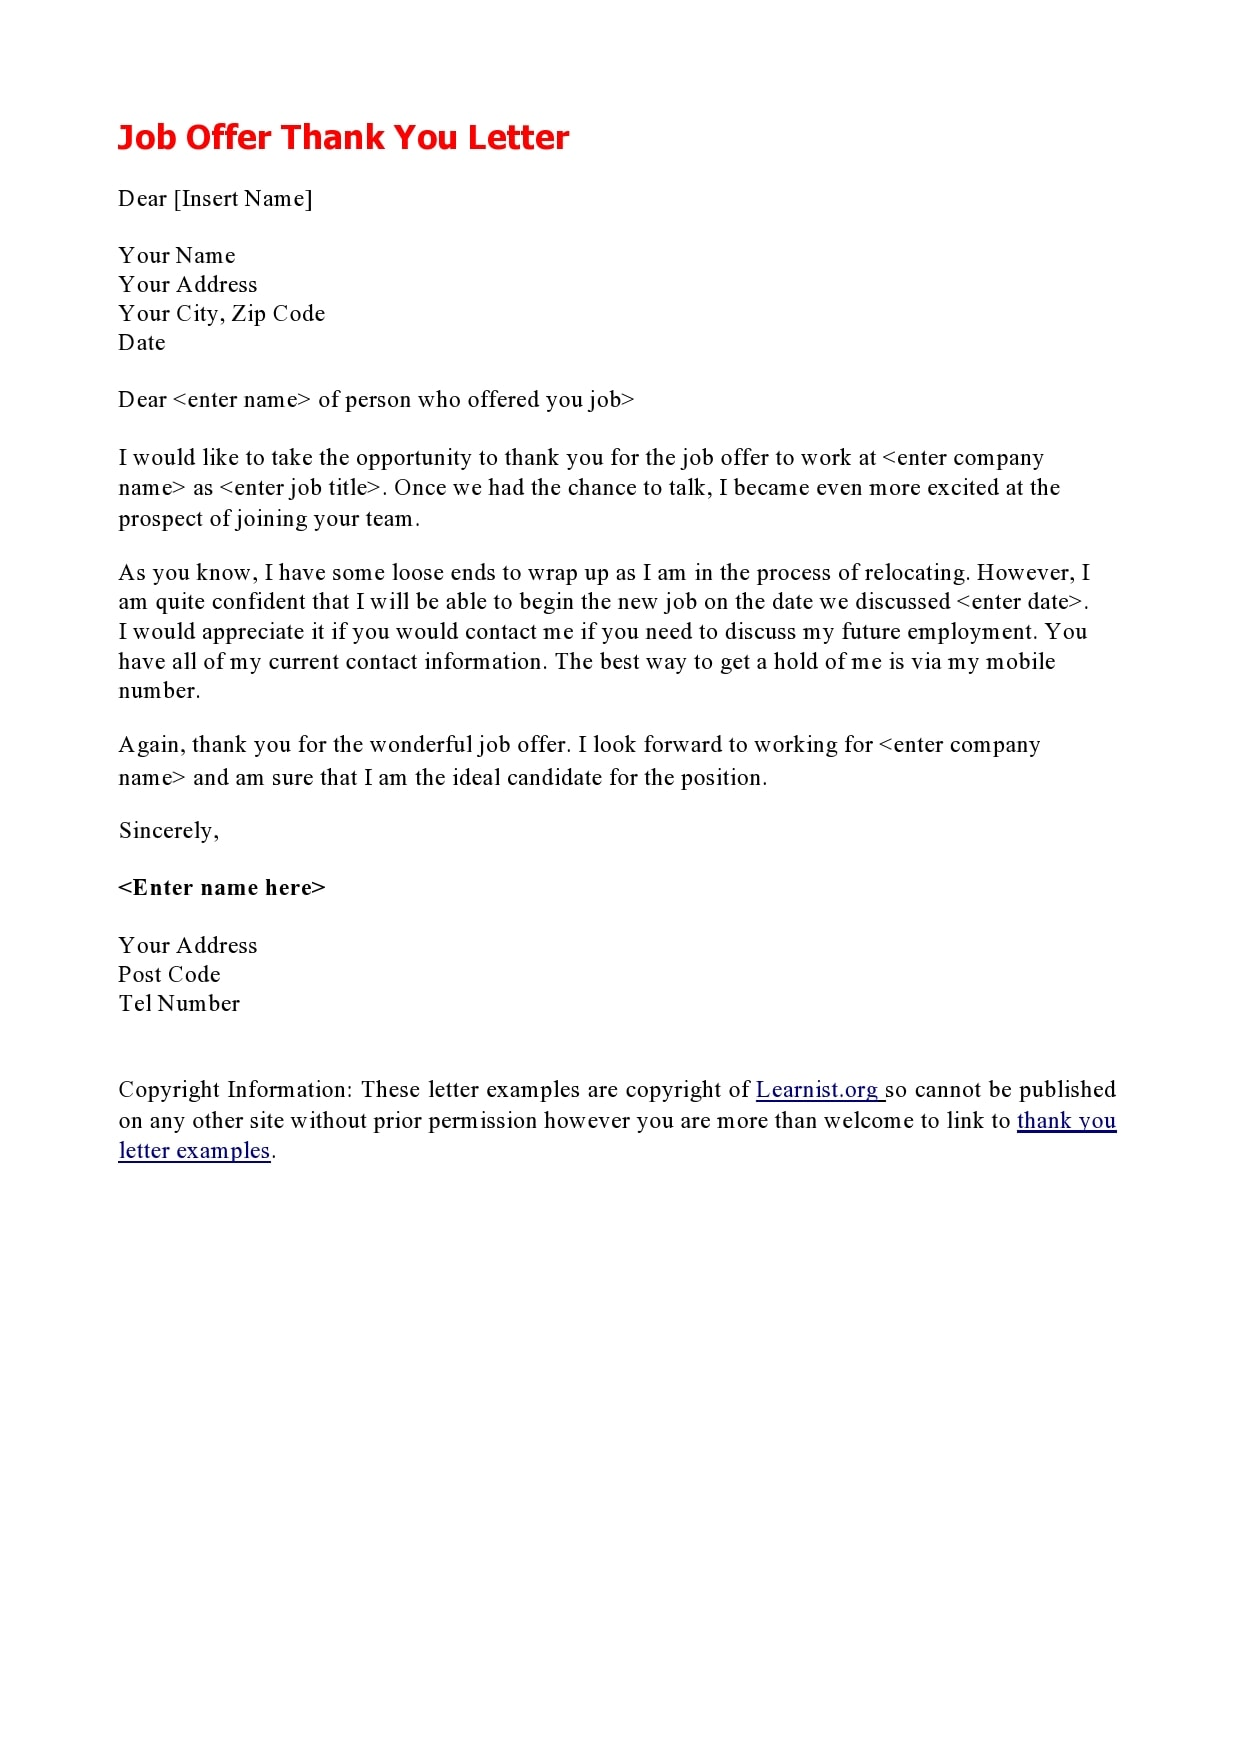 Thank You For Hiring Me Letter Template from templatearchive.com